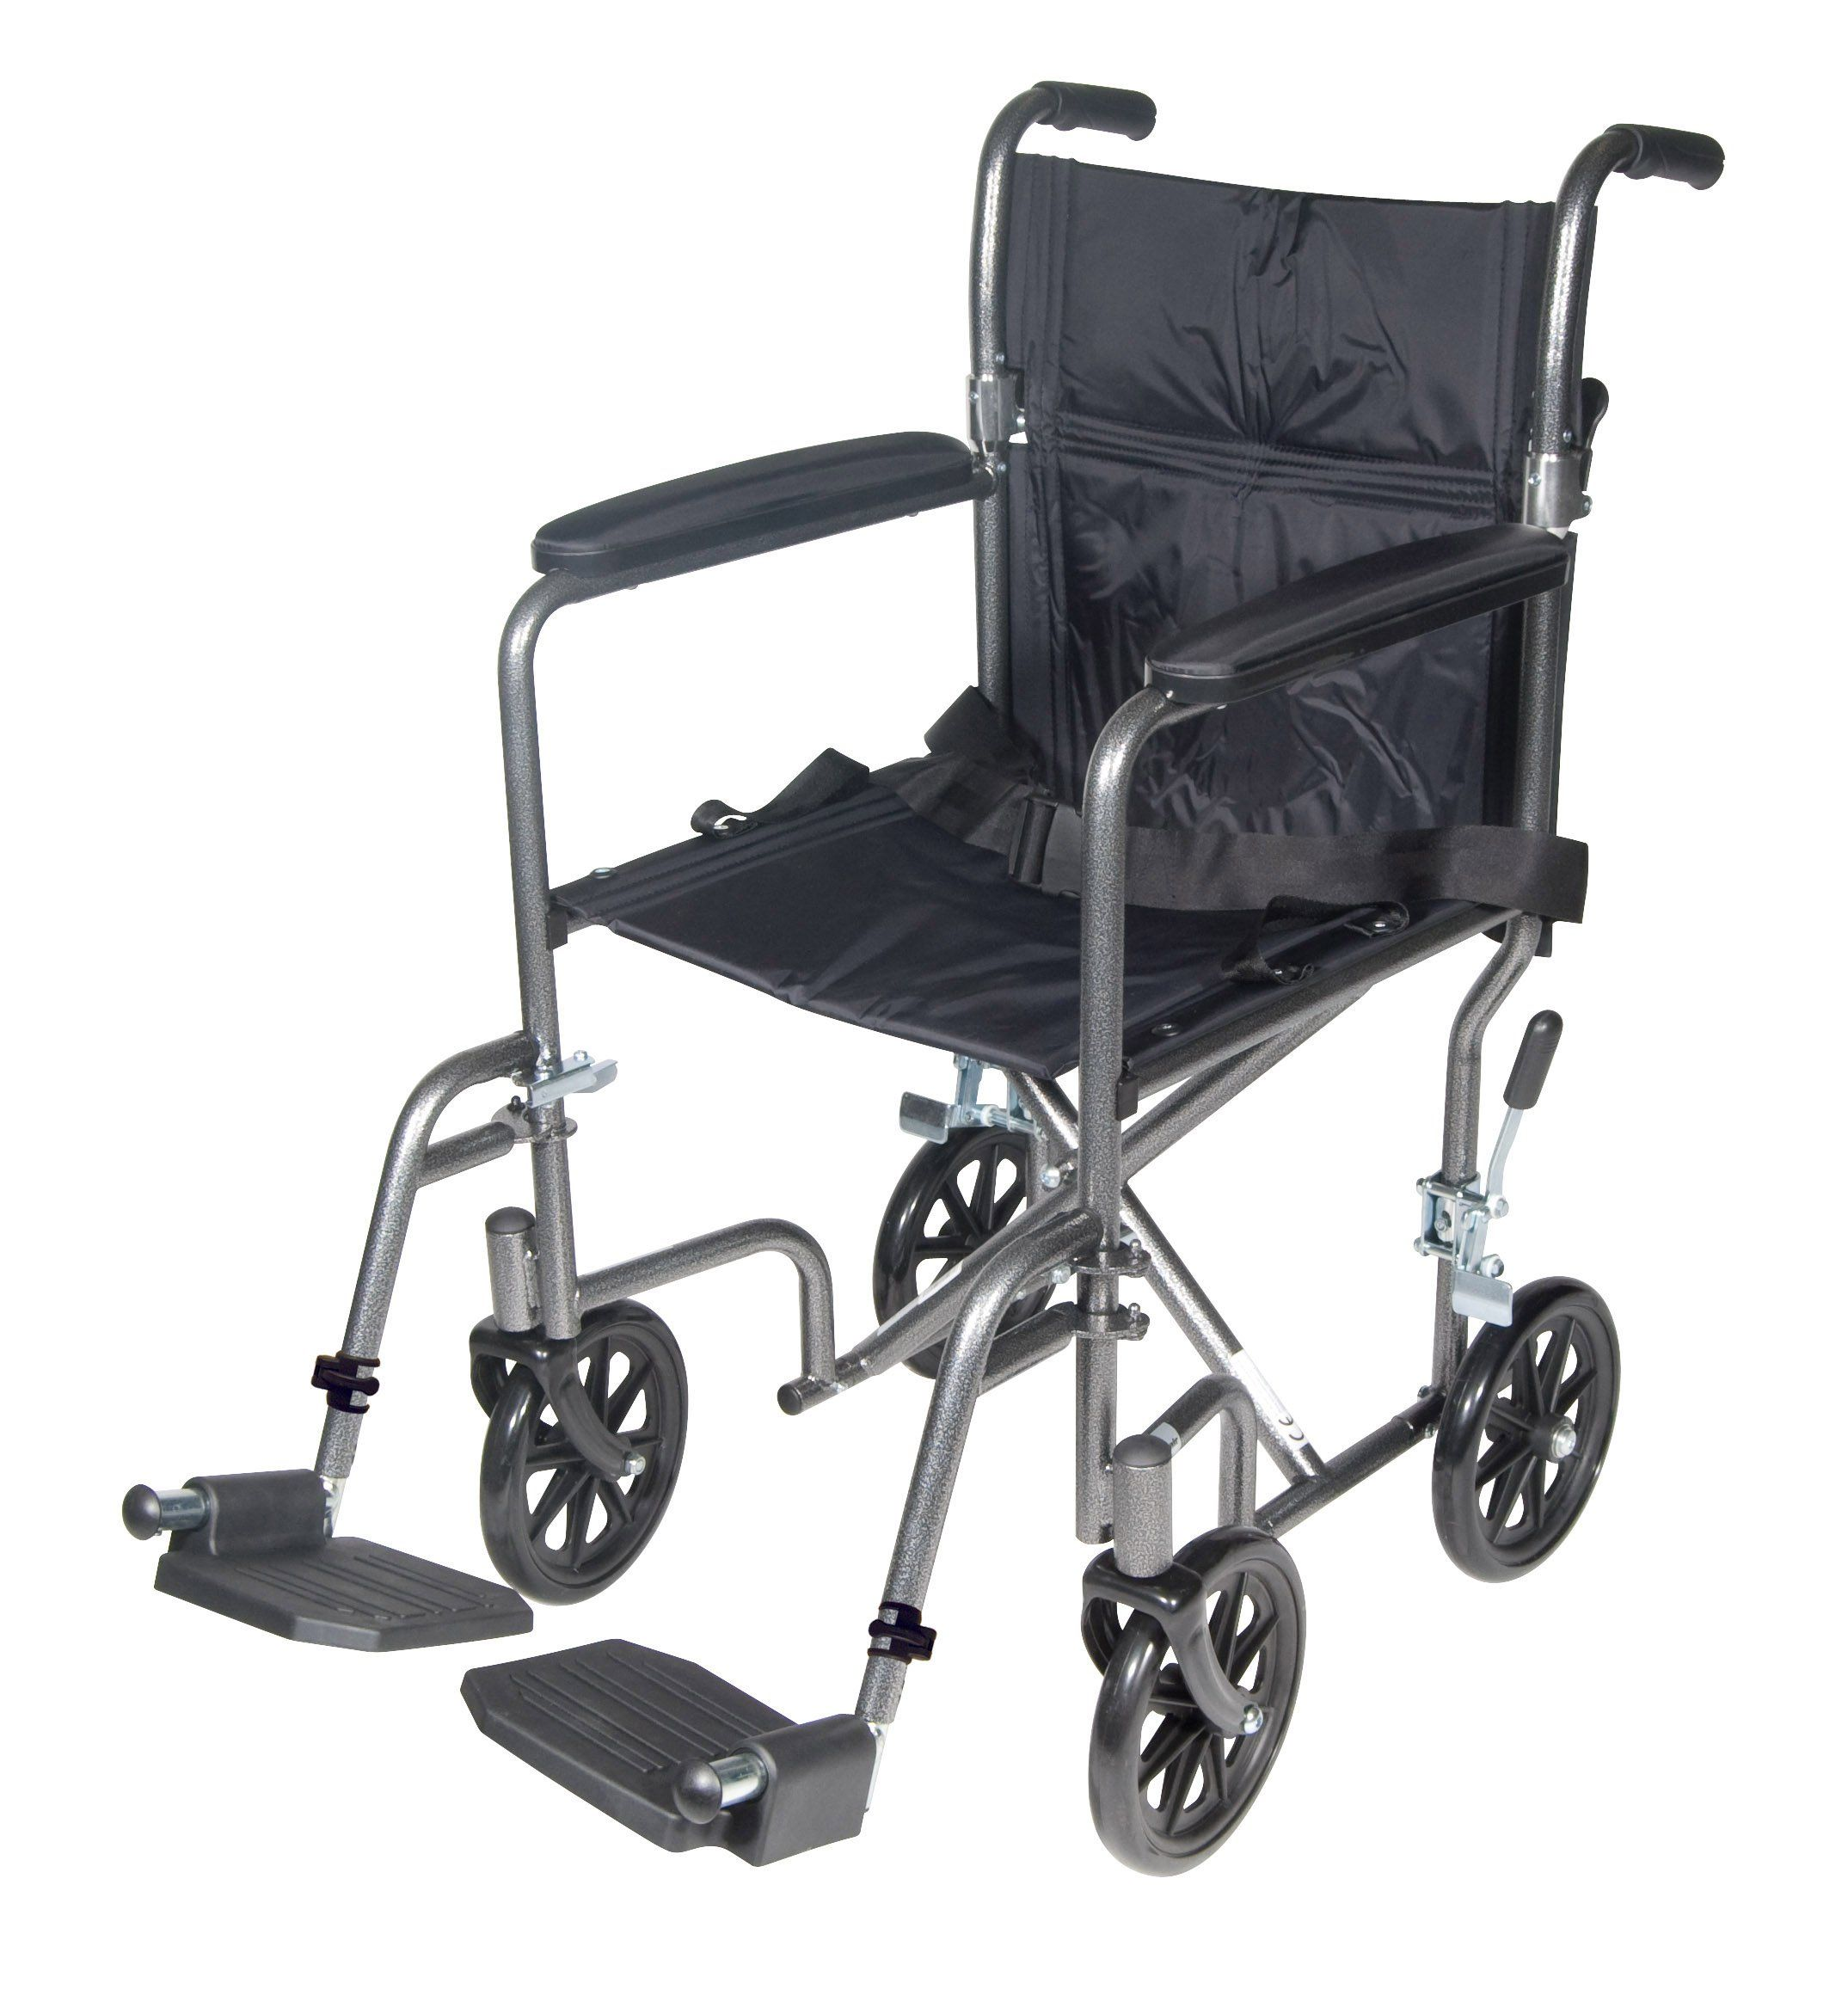 Amazon 96 71 Drive Medical Lightweight Steel Transport Wheelchair Fixed Full Arms 17 Quot Seat Transport Wheelchair Lightweight Wheelchair Wheelchair